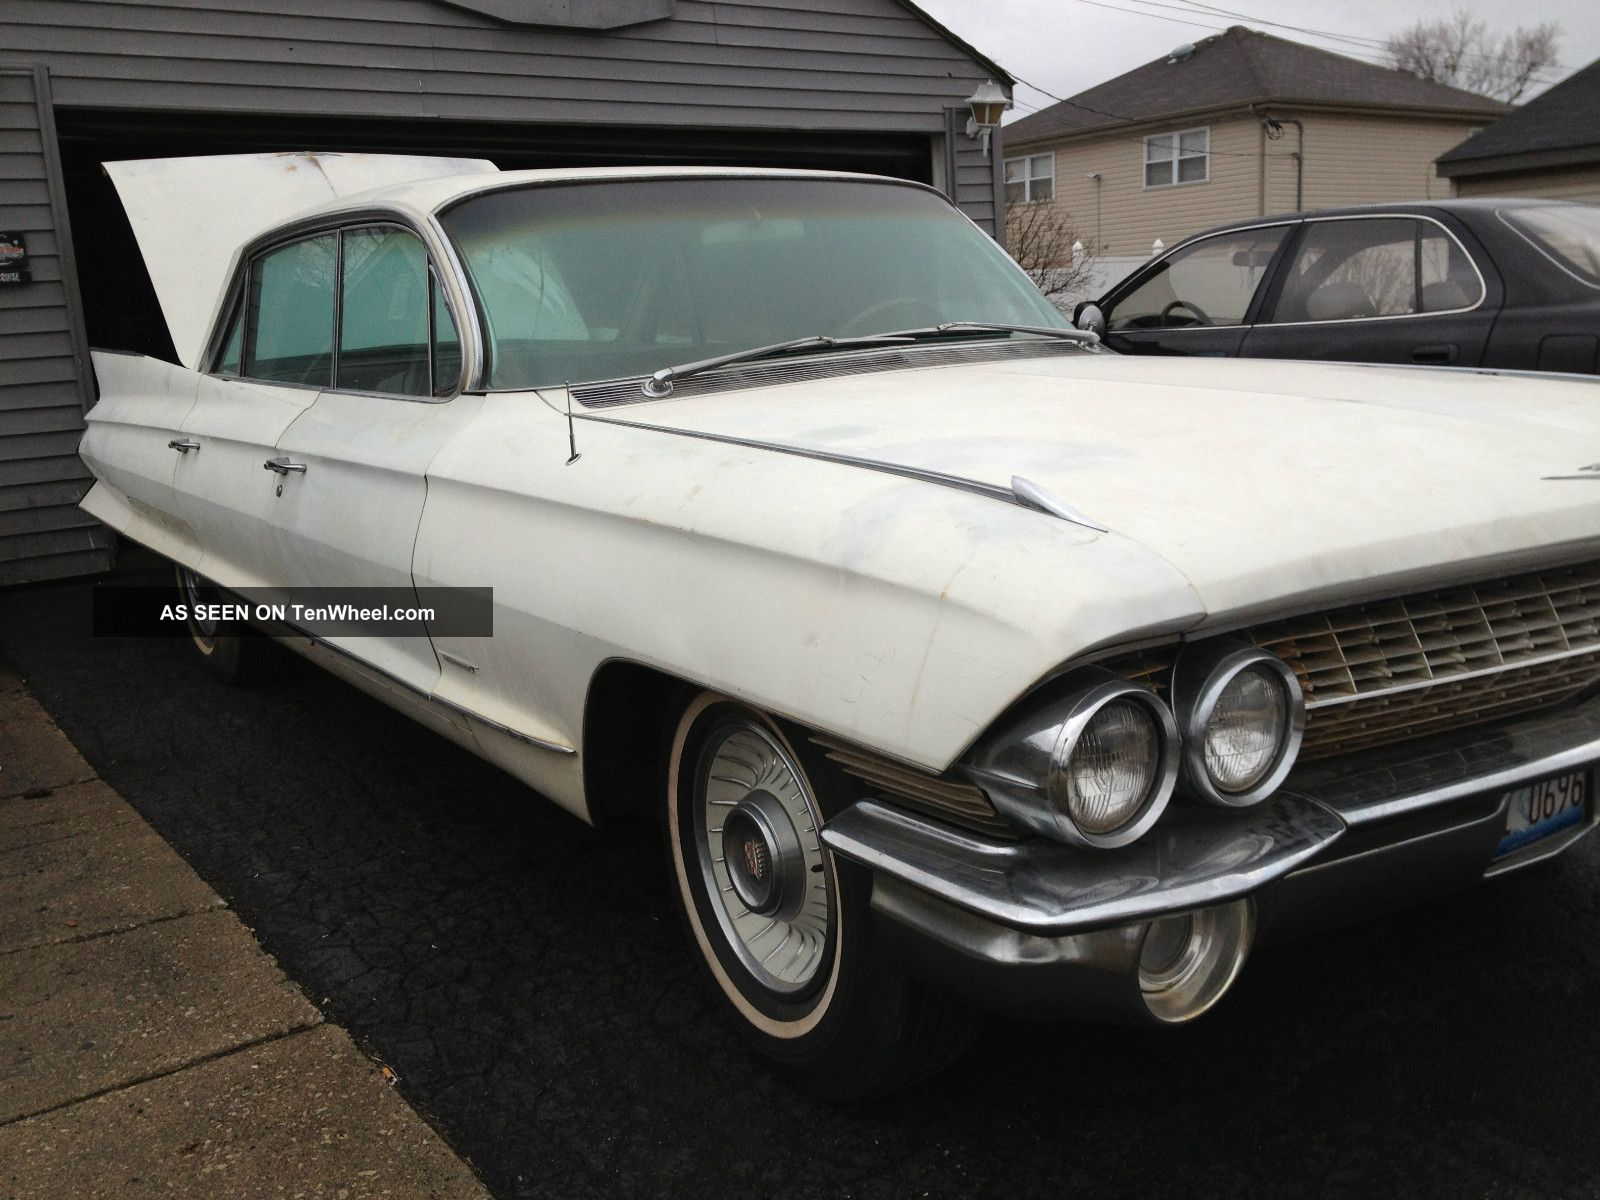 1961 Cadillac Series 62 Loaded And Other photo